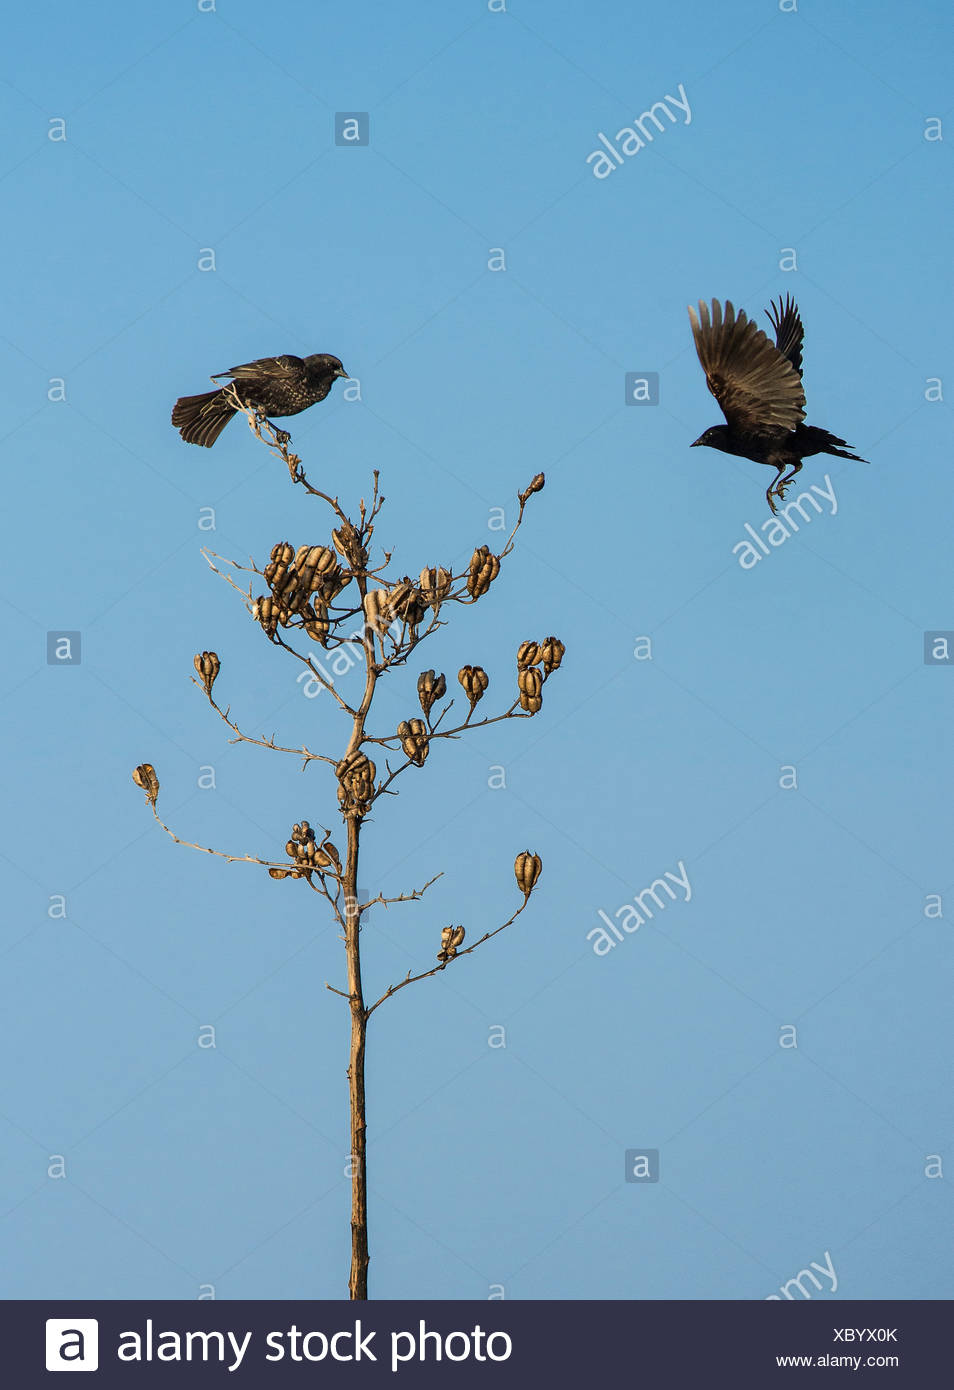 Two blackbirds on a dried plant, Delaware, USA - Stock Image